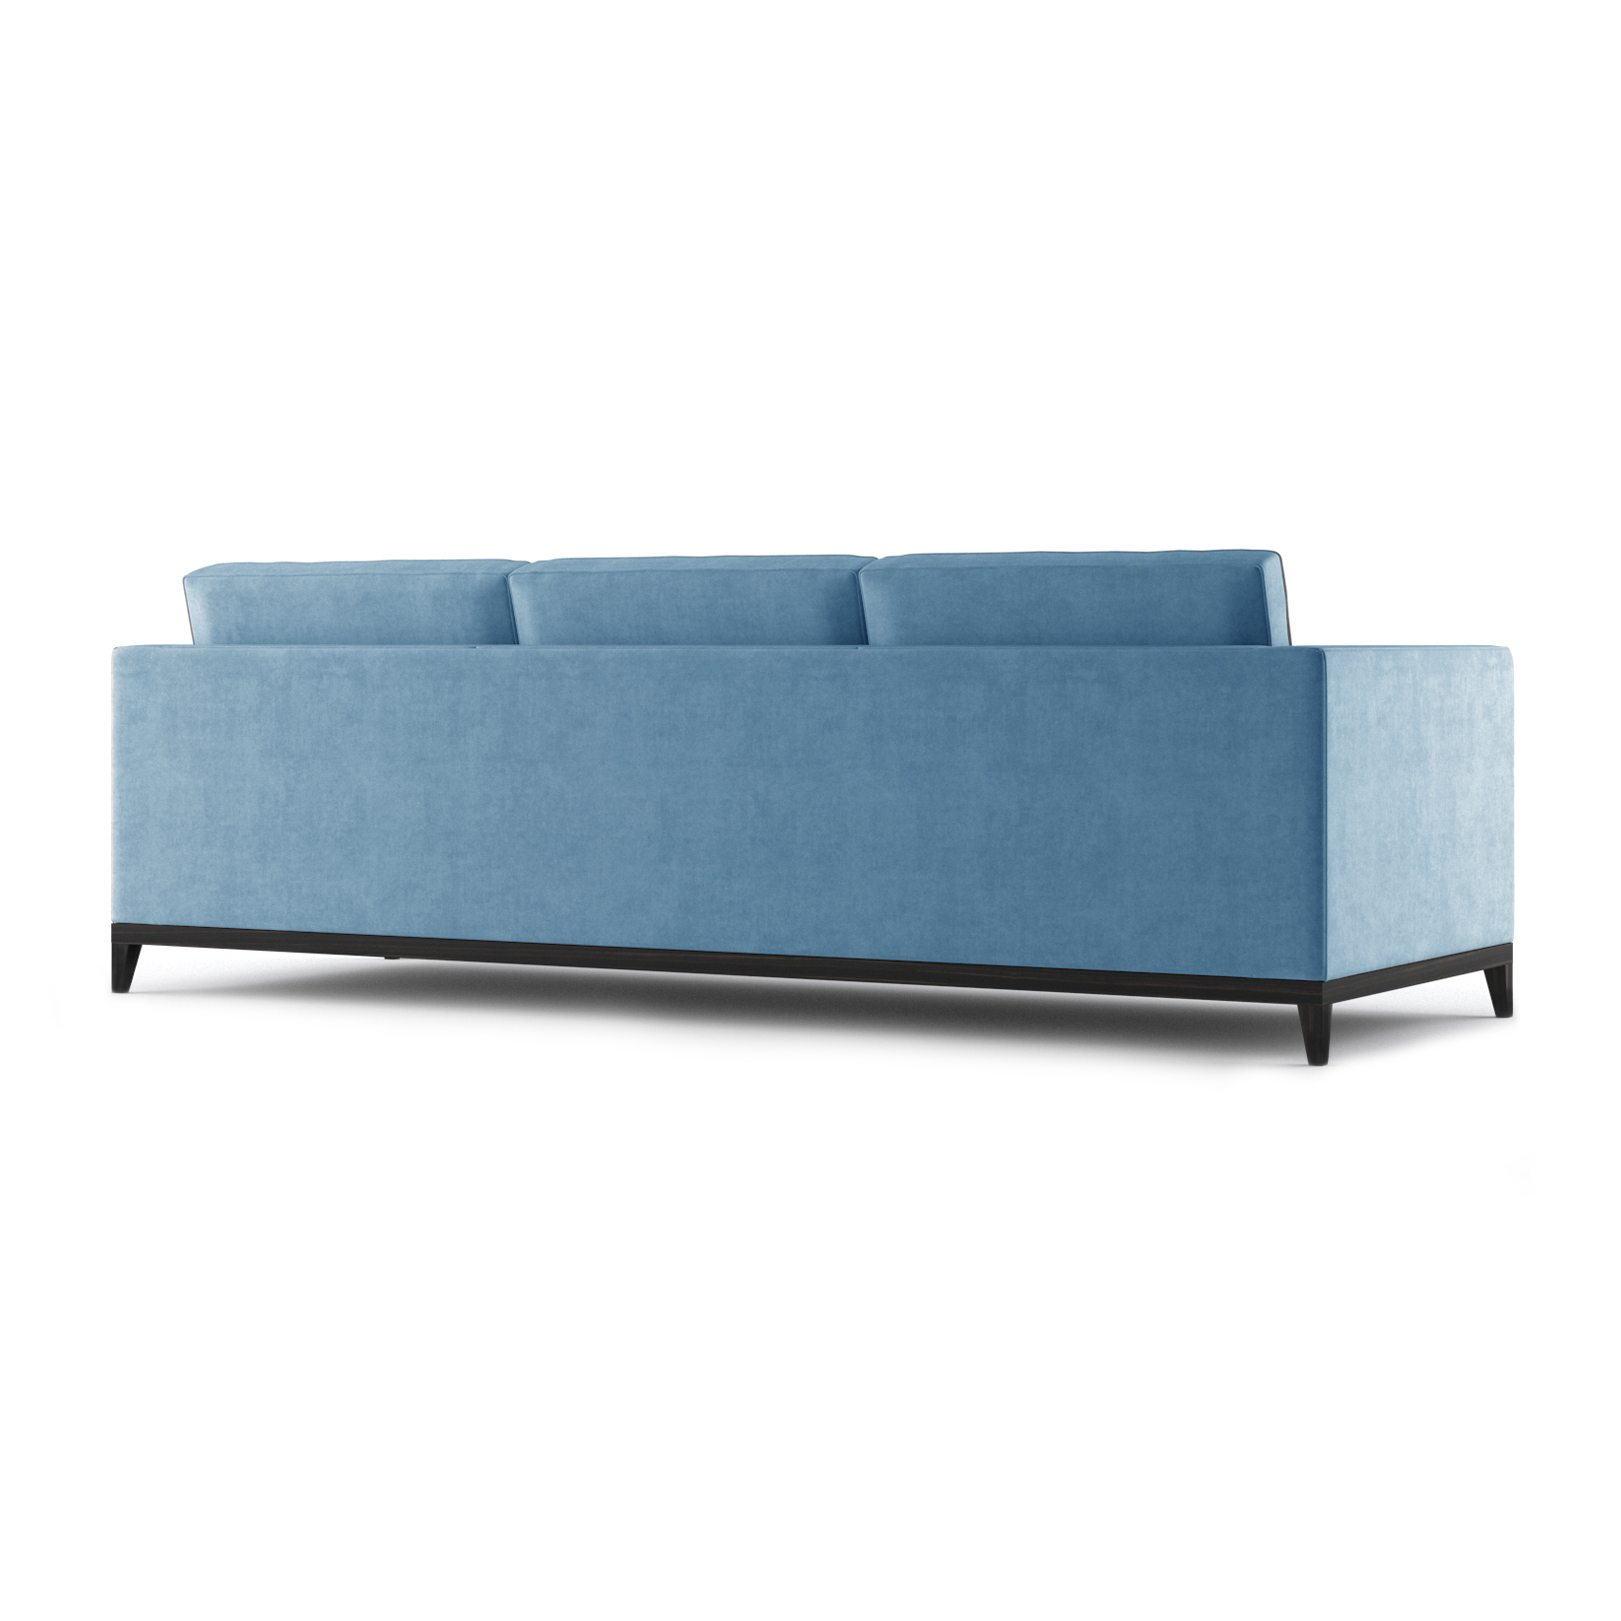 Armstrong Three and a Half Seater Sofa by Bonham & Bonham Blue 08